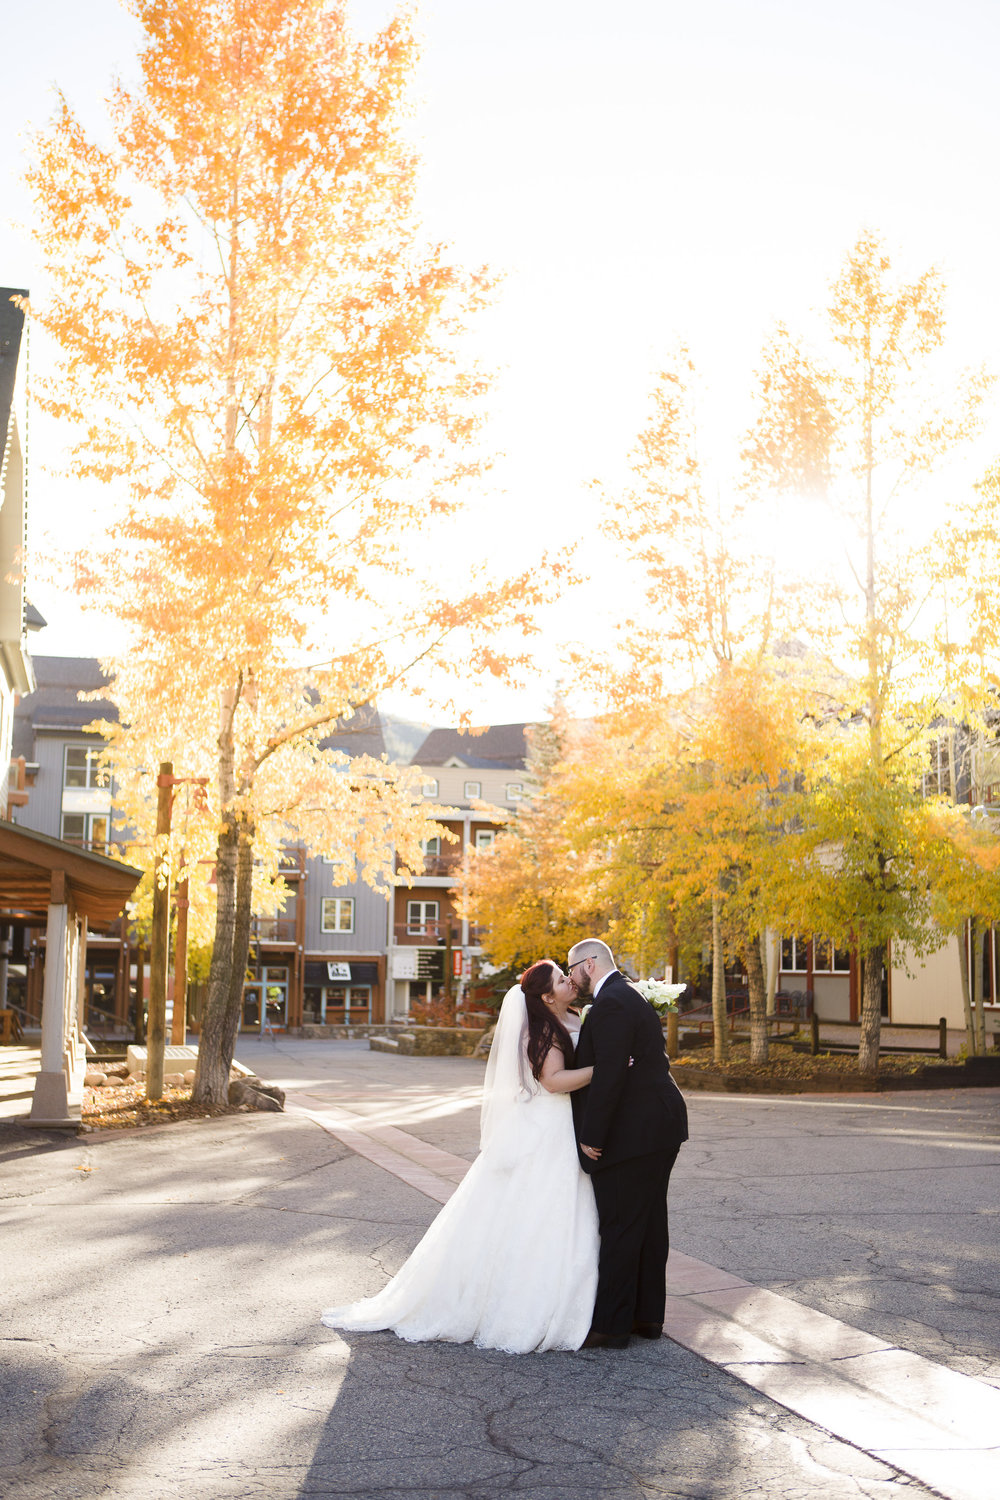 kristen-vance-warren-station-keystone-colorado-fall-wedding-2017.jpg